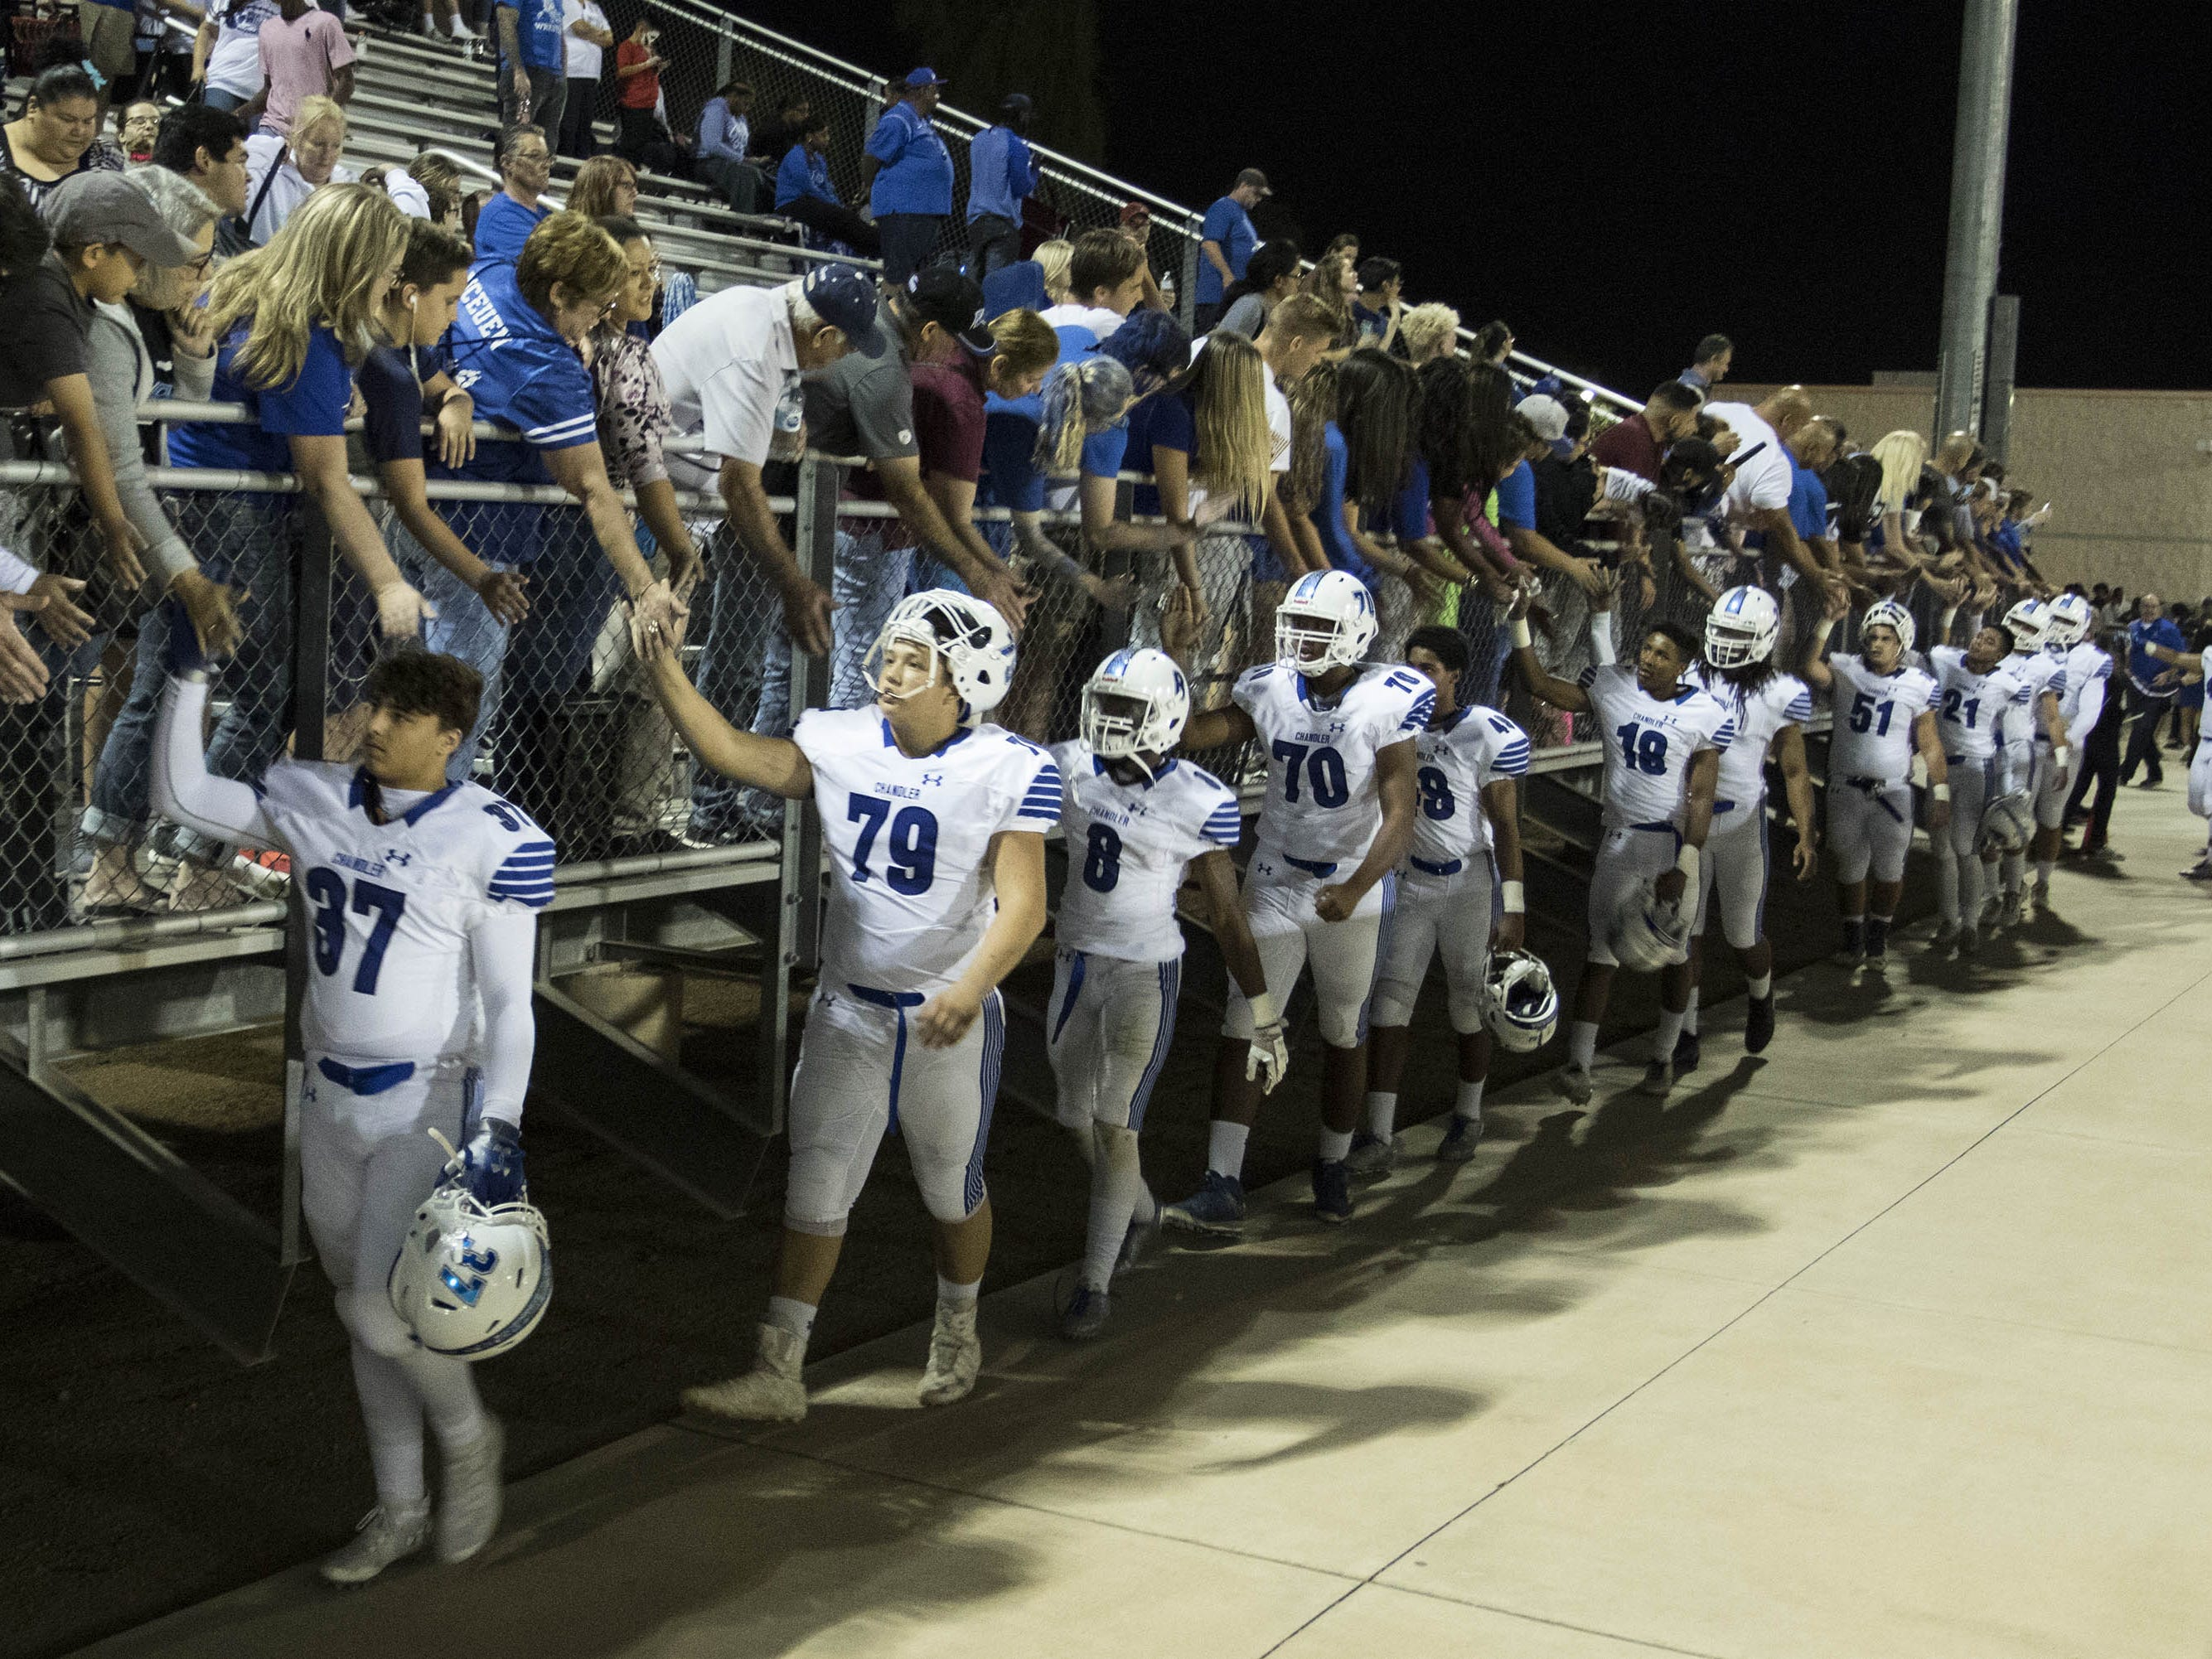 Chandler players get and give high-fives to fans after their 49-7 win over crosstown rival Hamilton, Friday, Oct. 26, 2018. #azhsfb